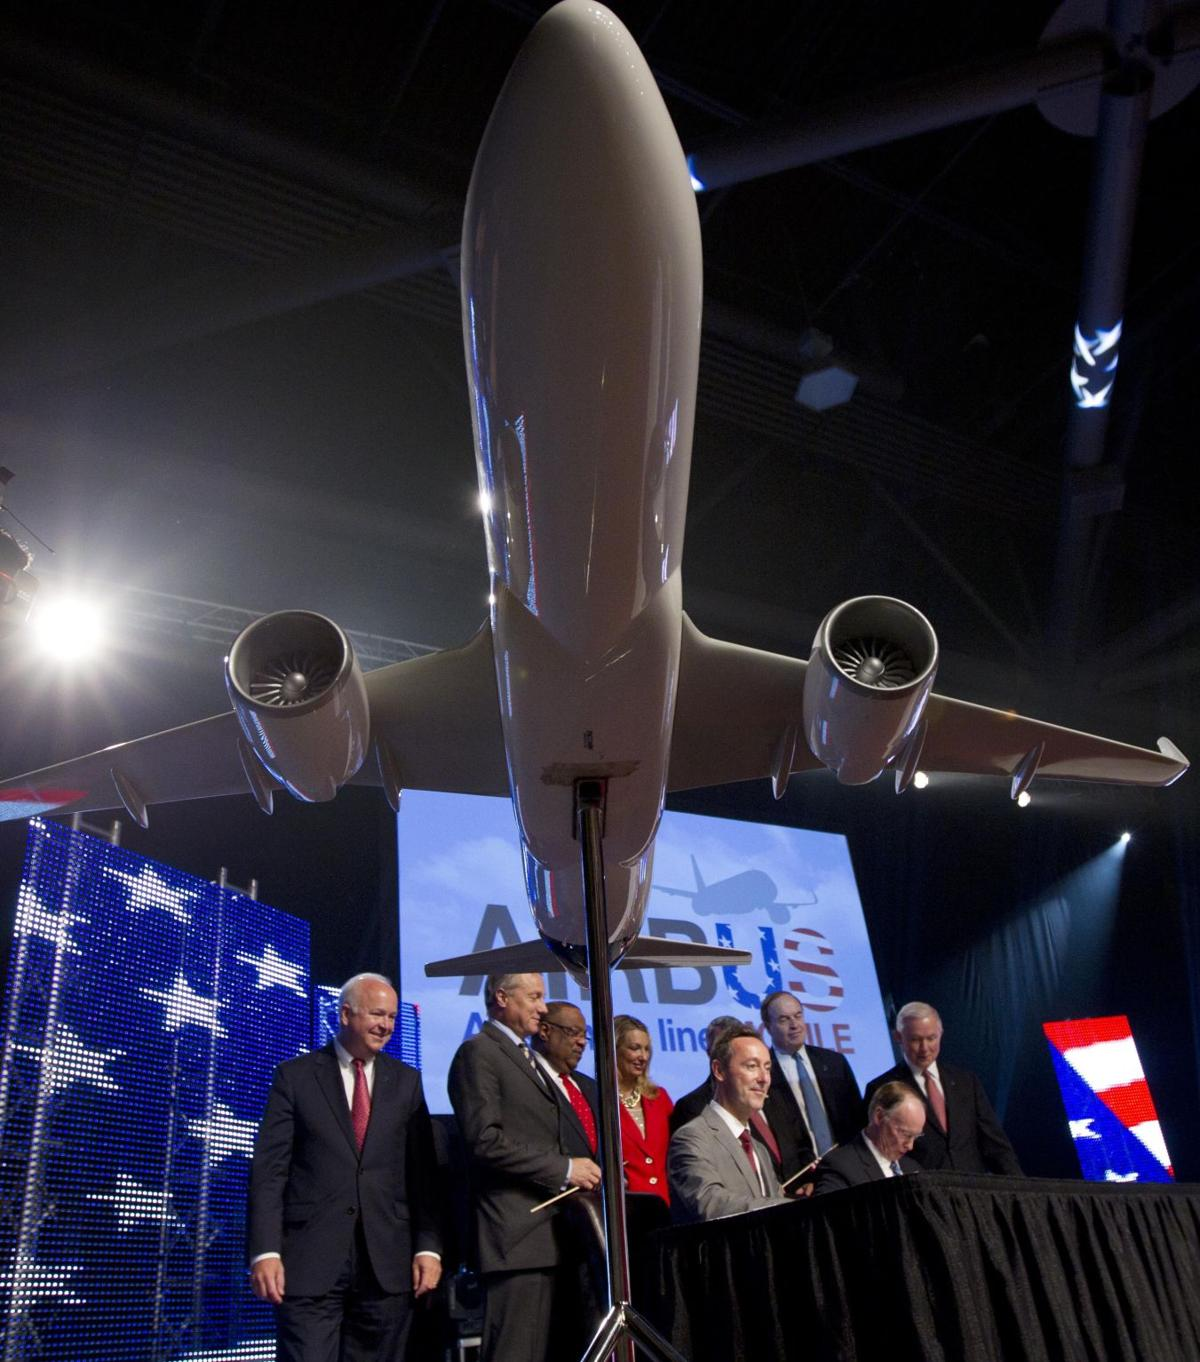 Airbus landing in Alabama European giant plans first U.S. assembly plant